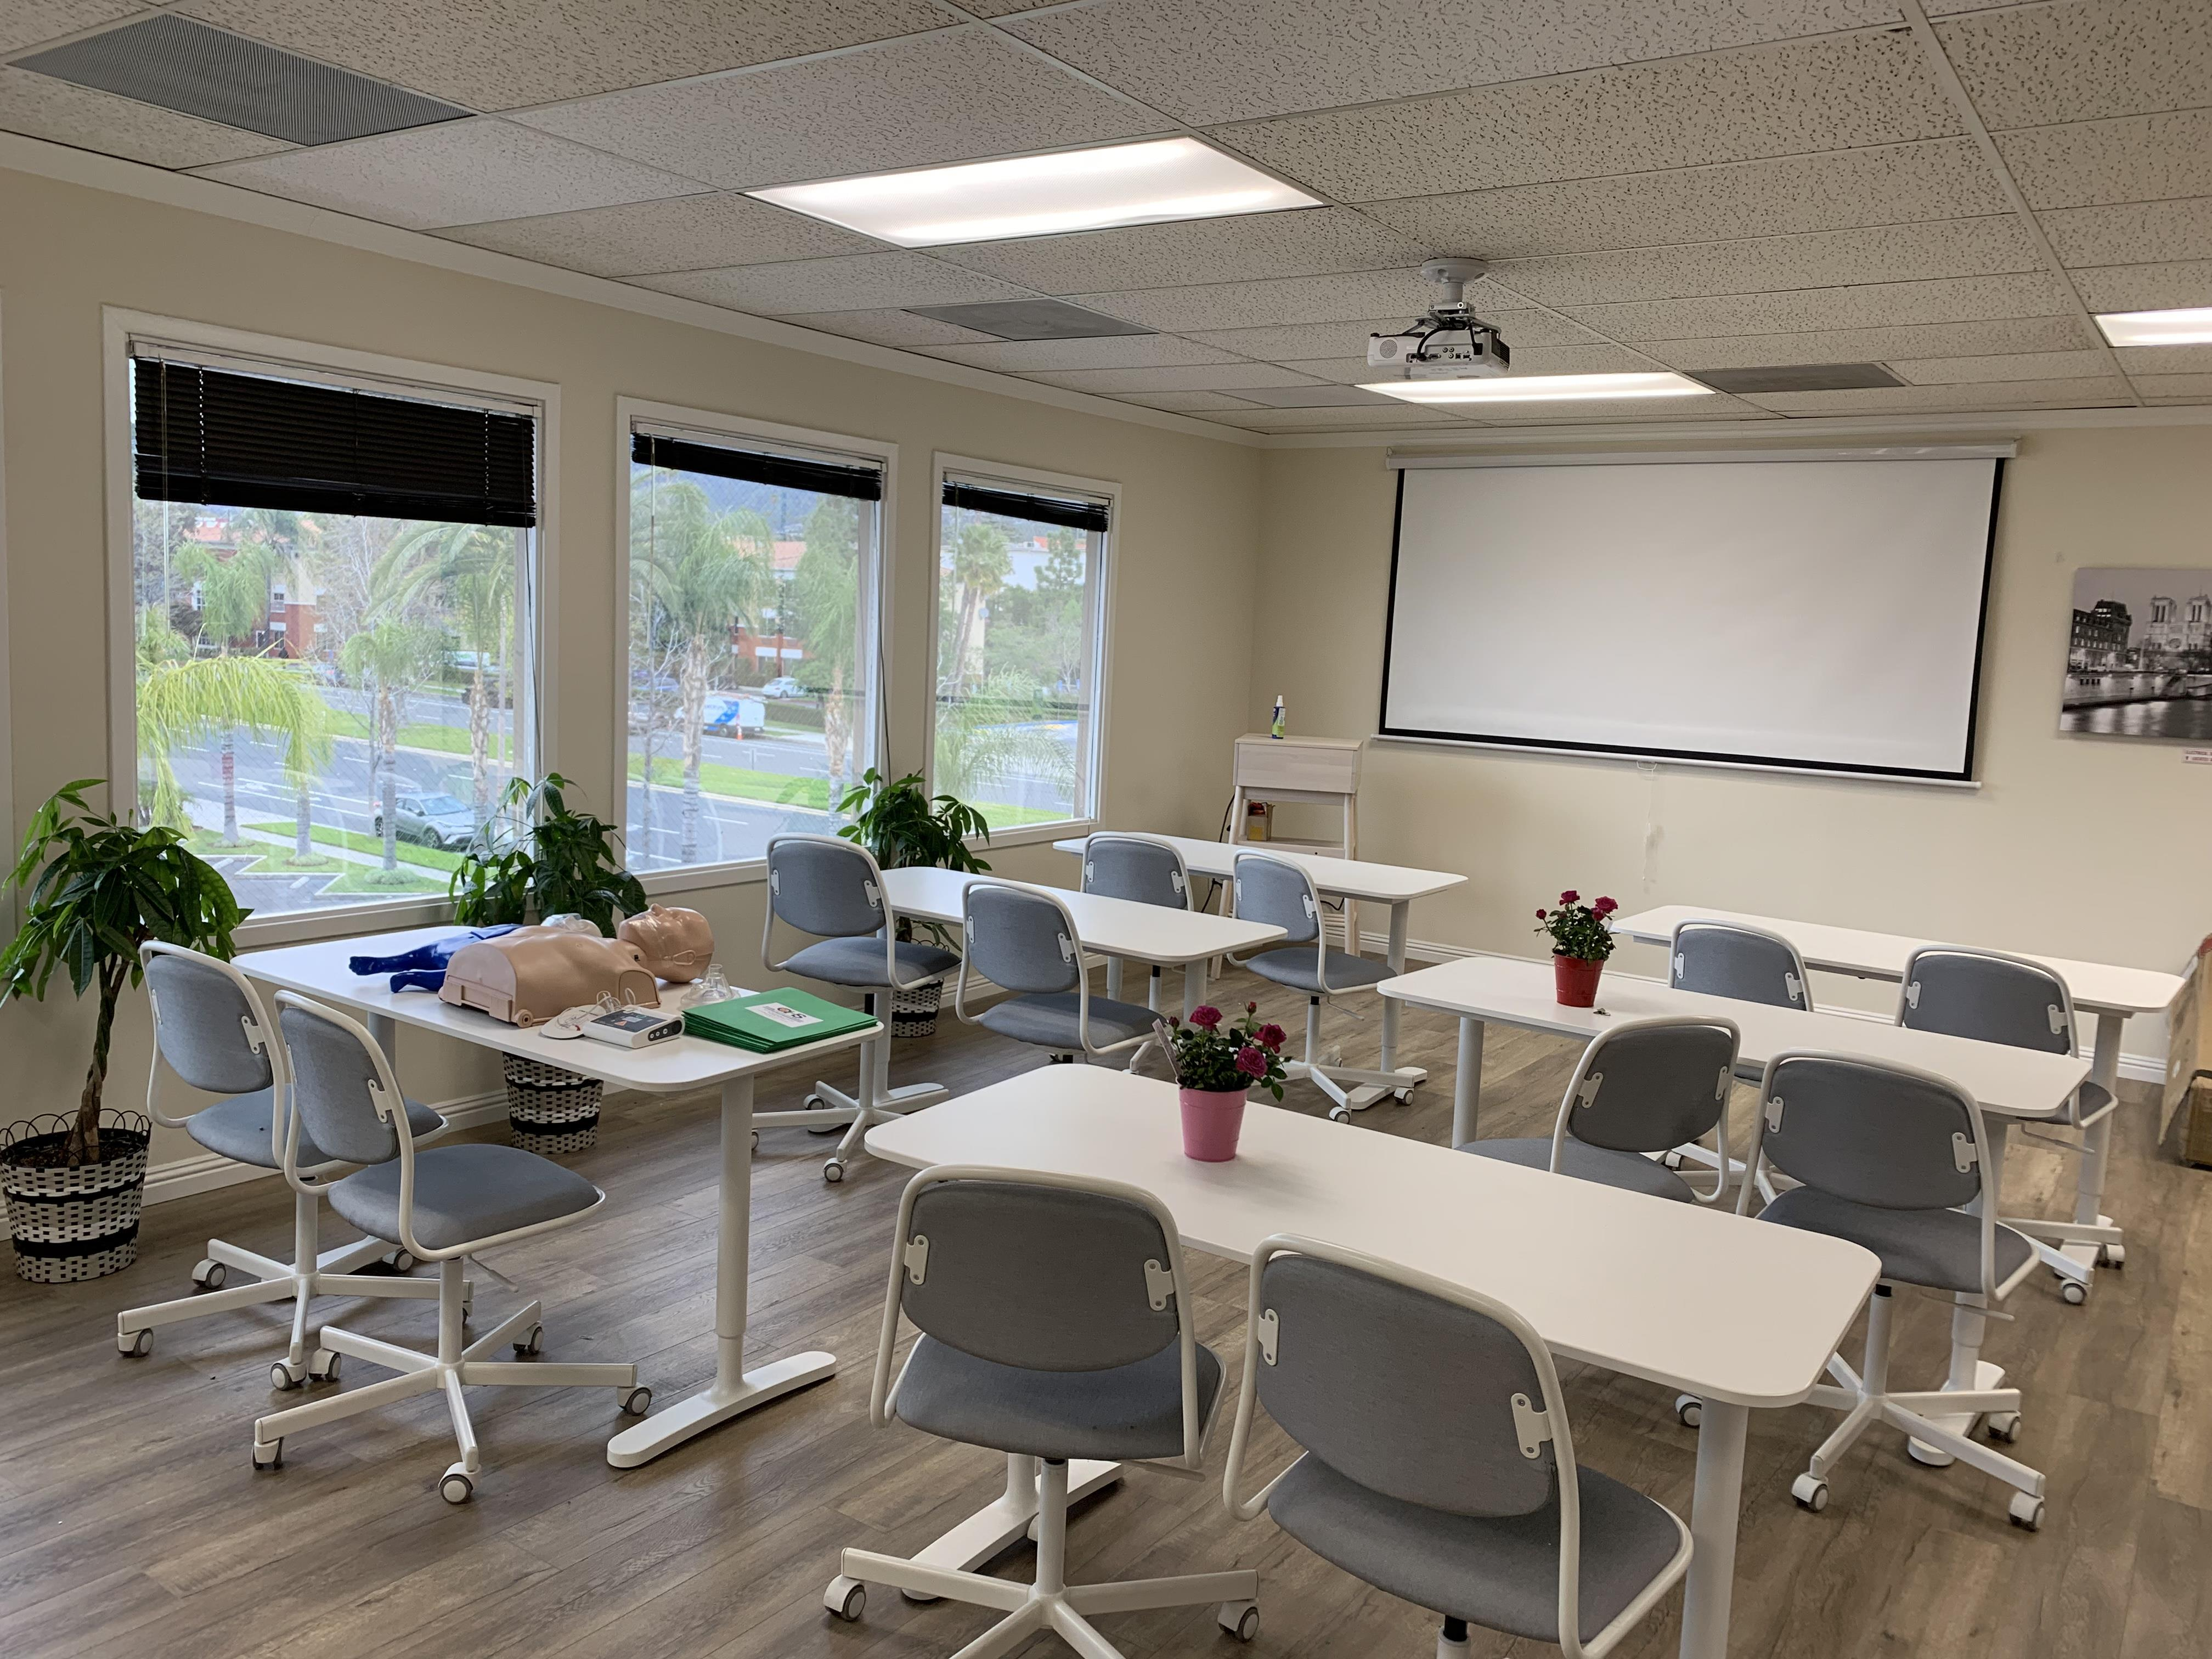 Quality Healthcare Solutions, Inc - Classroom Space with Kitchennete